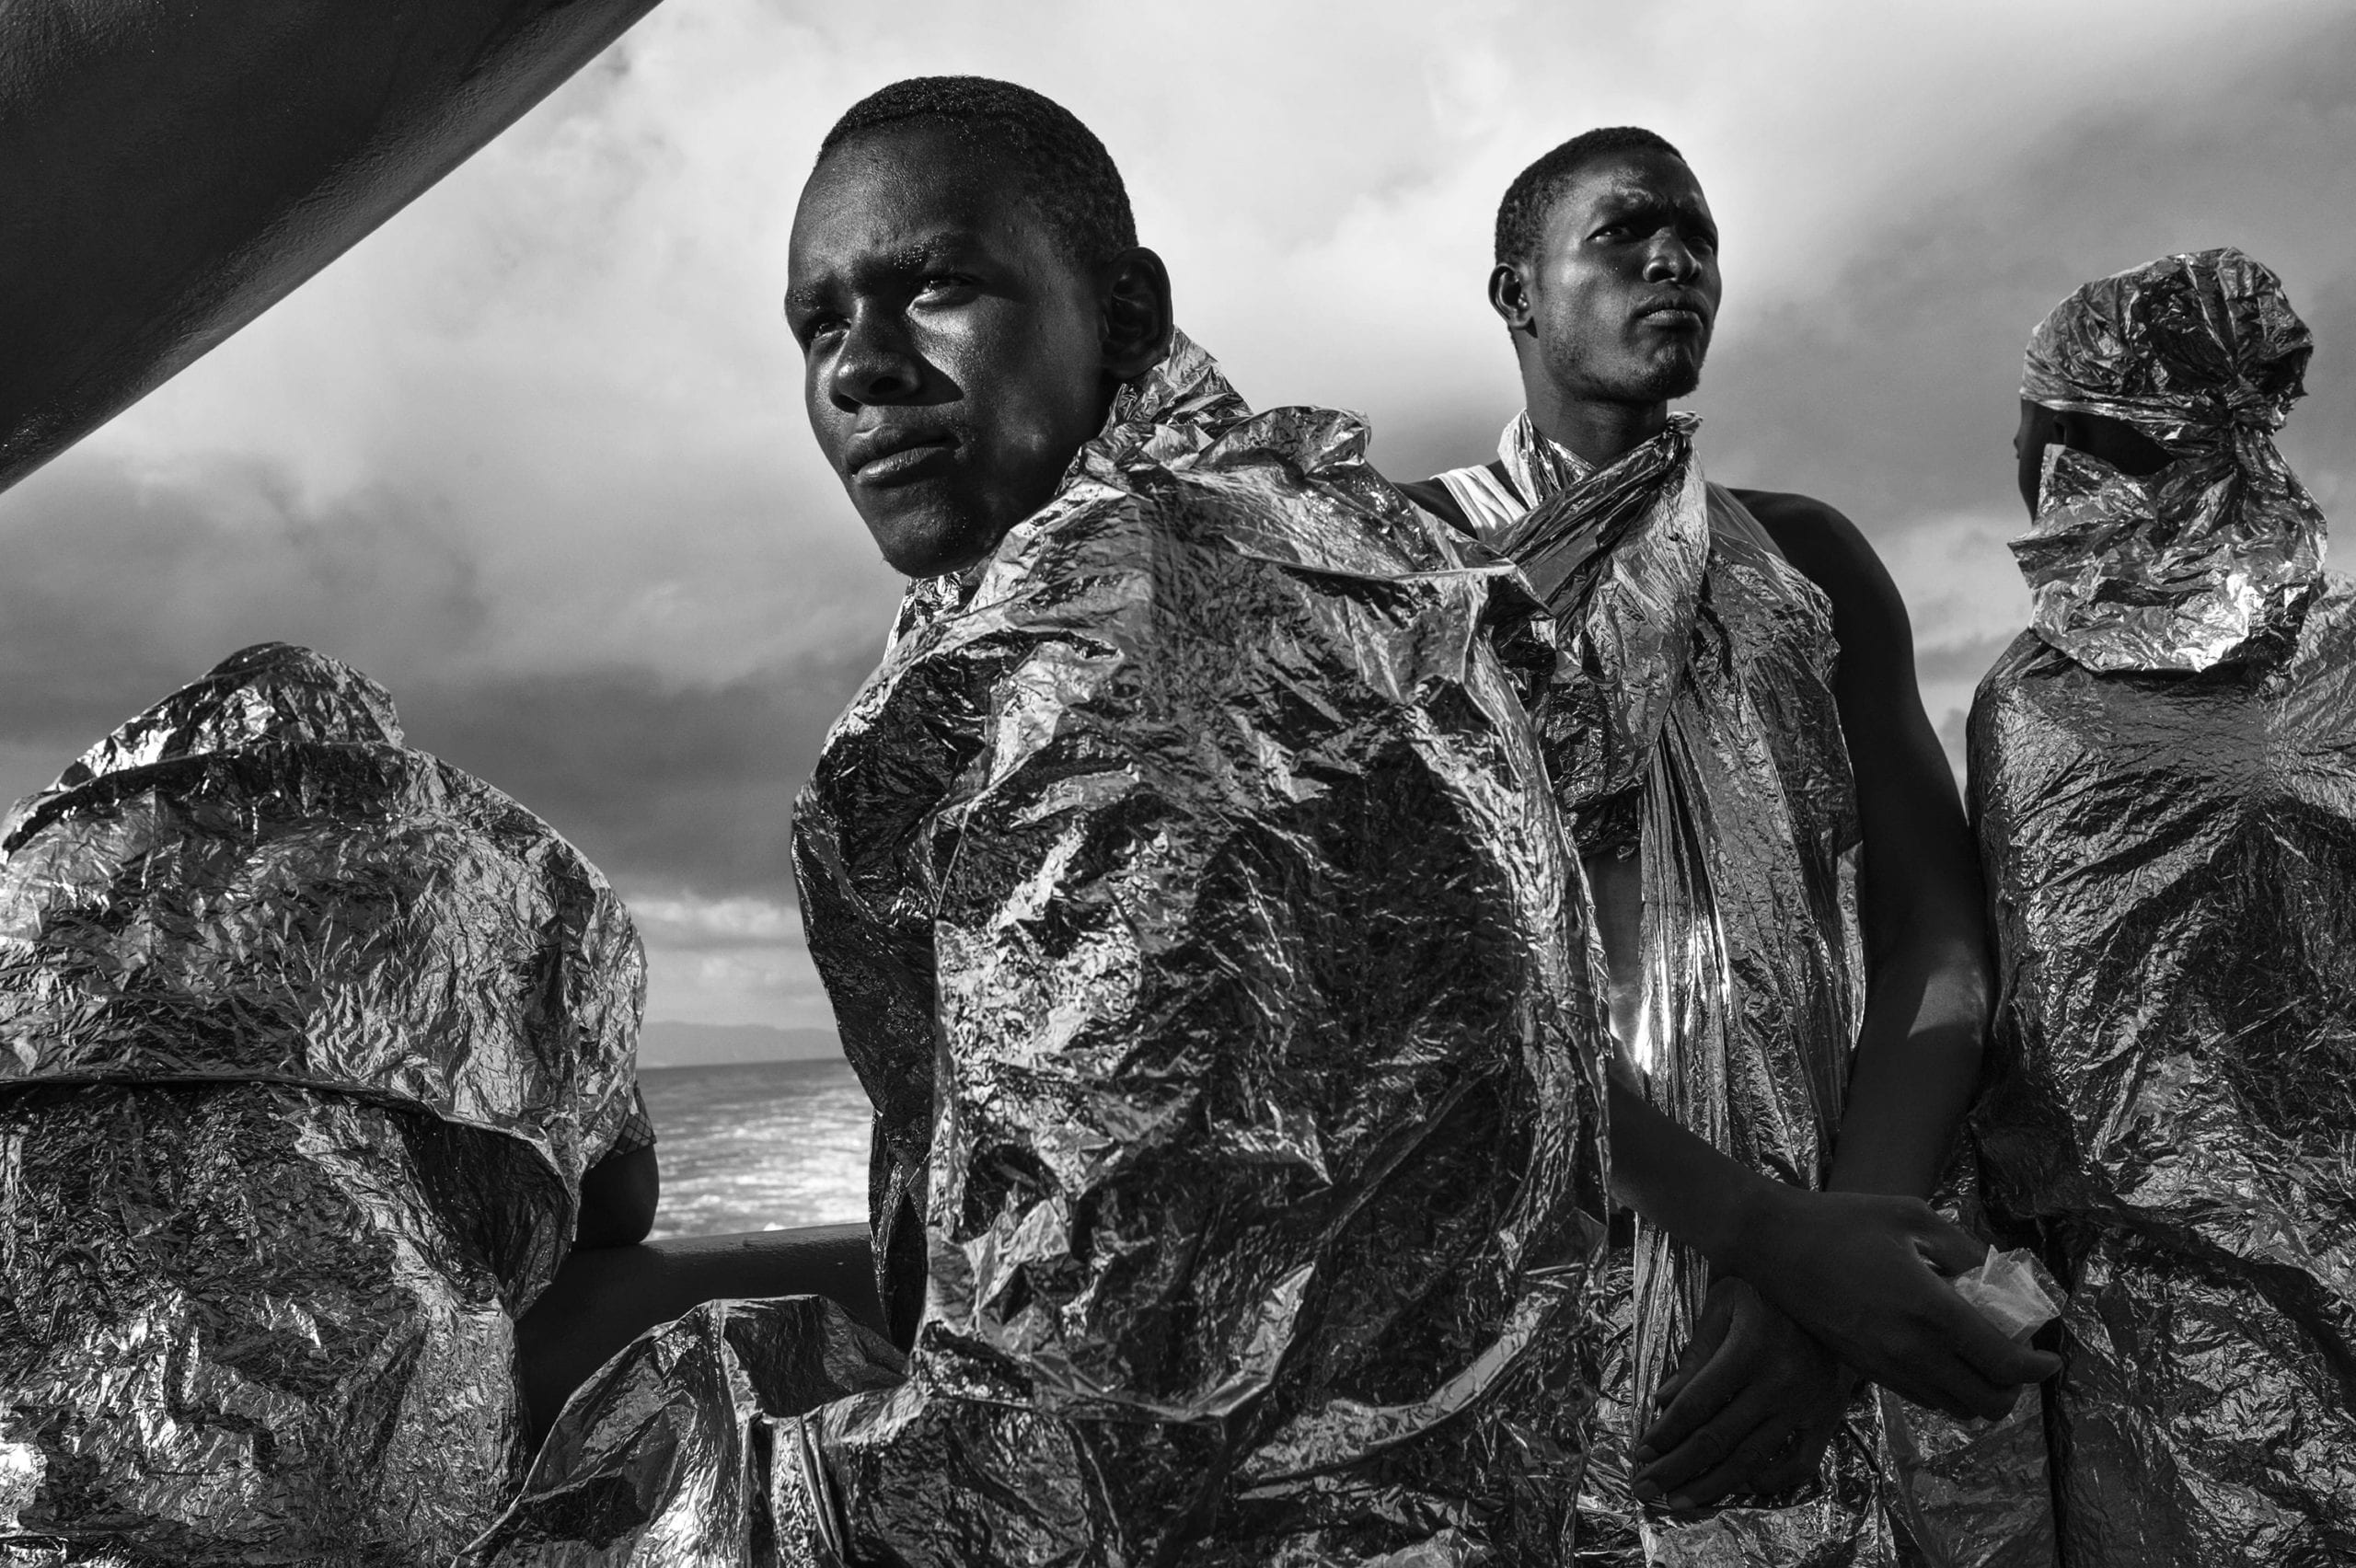 After spending two days and two nights sailing on the Mediterranean Sea on the deck of the M.S.F. (Médecins Sans Frontières - Doctors Without Borders) search and rescue ship Bourbon Argos, rescued migrants - still wrapped in their emergency blankets - catch sight of the Italian coast for the first time soon after dawn. 23 August 2015 In 2015 the ever-increasing number of migrants attempting to cross the Mediterranean Sea on unseaworthy vessels towards Europe led to an unprecedented crisis. Nearly 120 thousand people have reached Italy in the first 8 months of the year. While the European governments struggled to deal with the influx, the death toll in the Mediterranean reached record numbers. Early in May the international medical relief organization Médecins Sans Frontières (M.S.F.) joined in the search and rescue operations led in the Mediterranean Sea and launched three ships at different stages: the Phoenix (run by the Migrant Offshore Aid Station), the Bourbon Argos and Dignity (c) Francesco Zizola